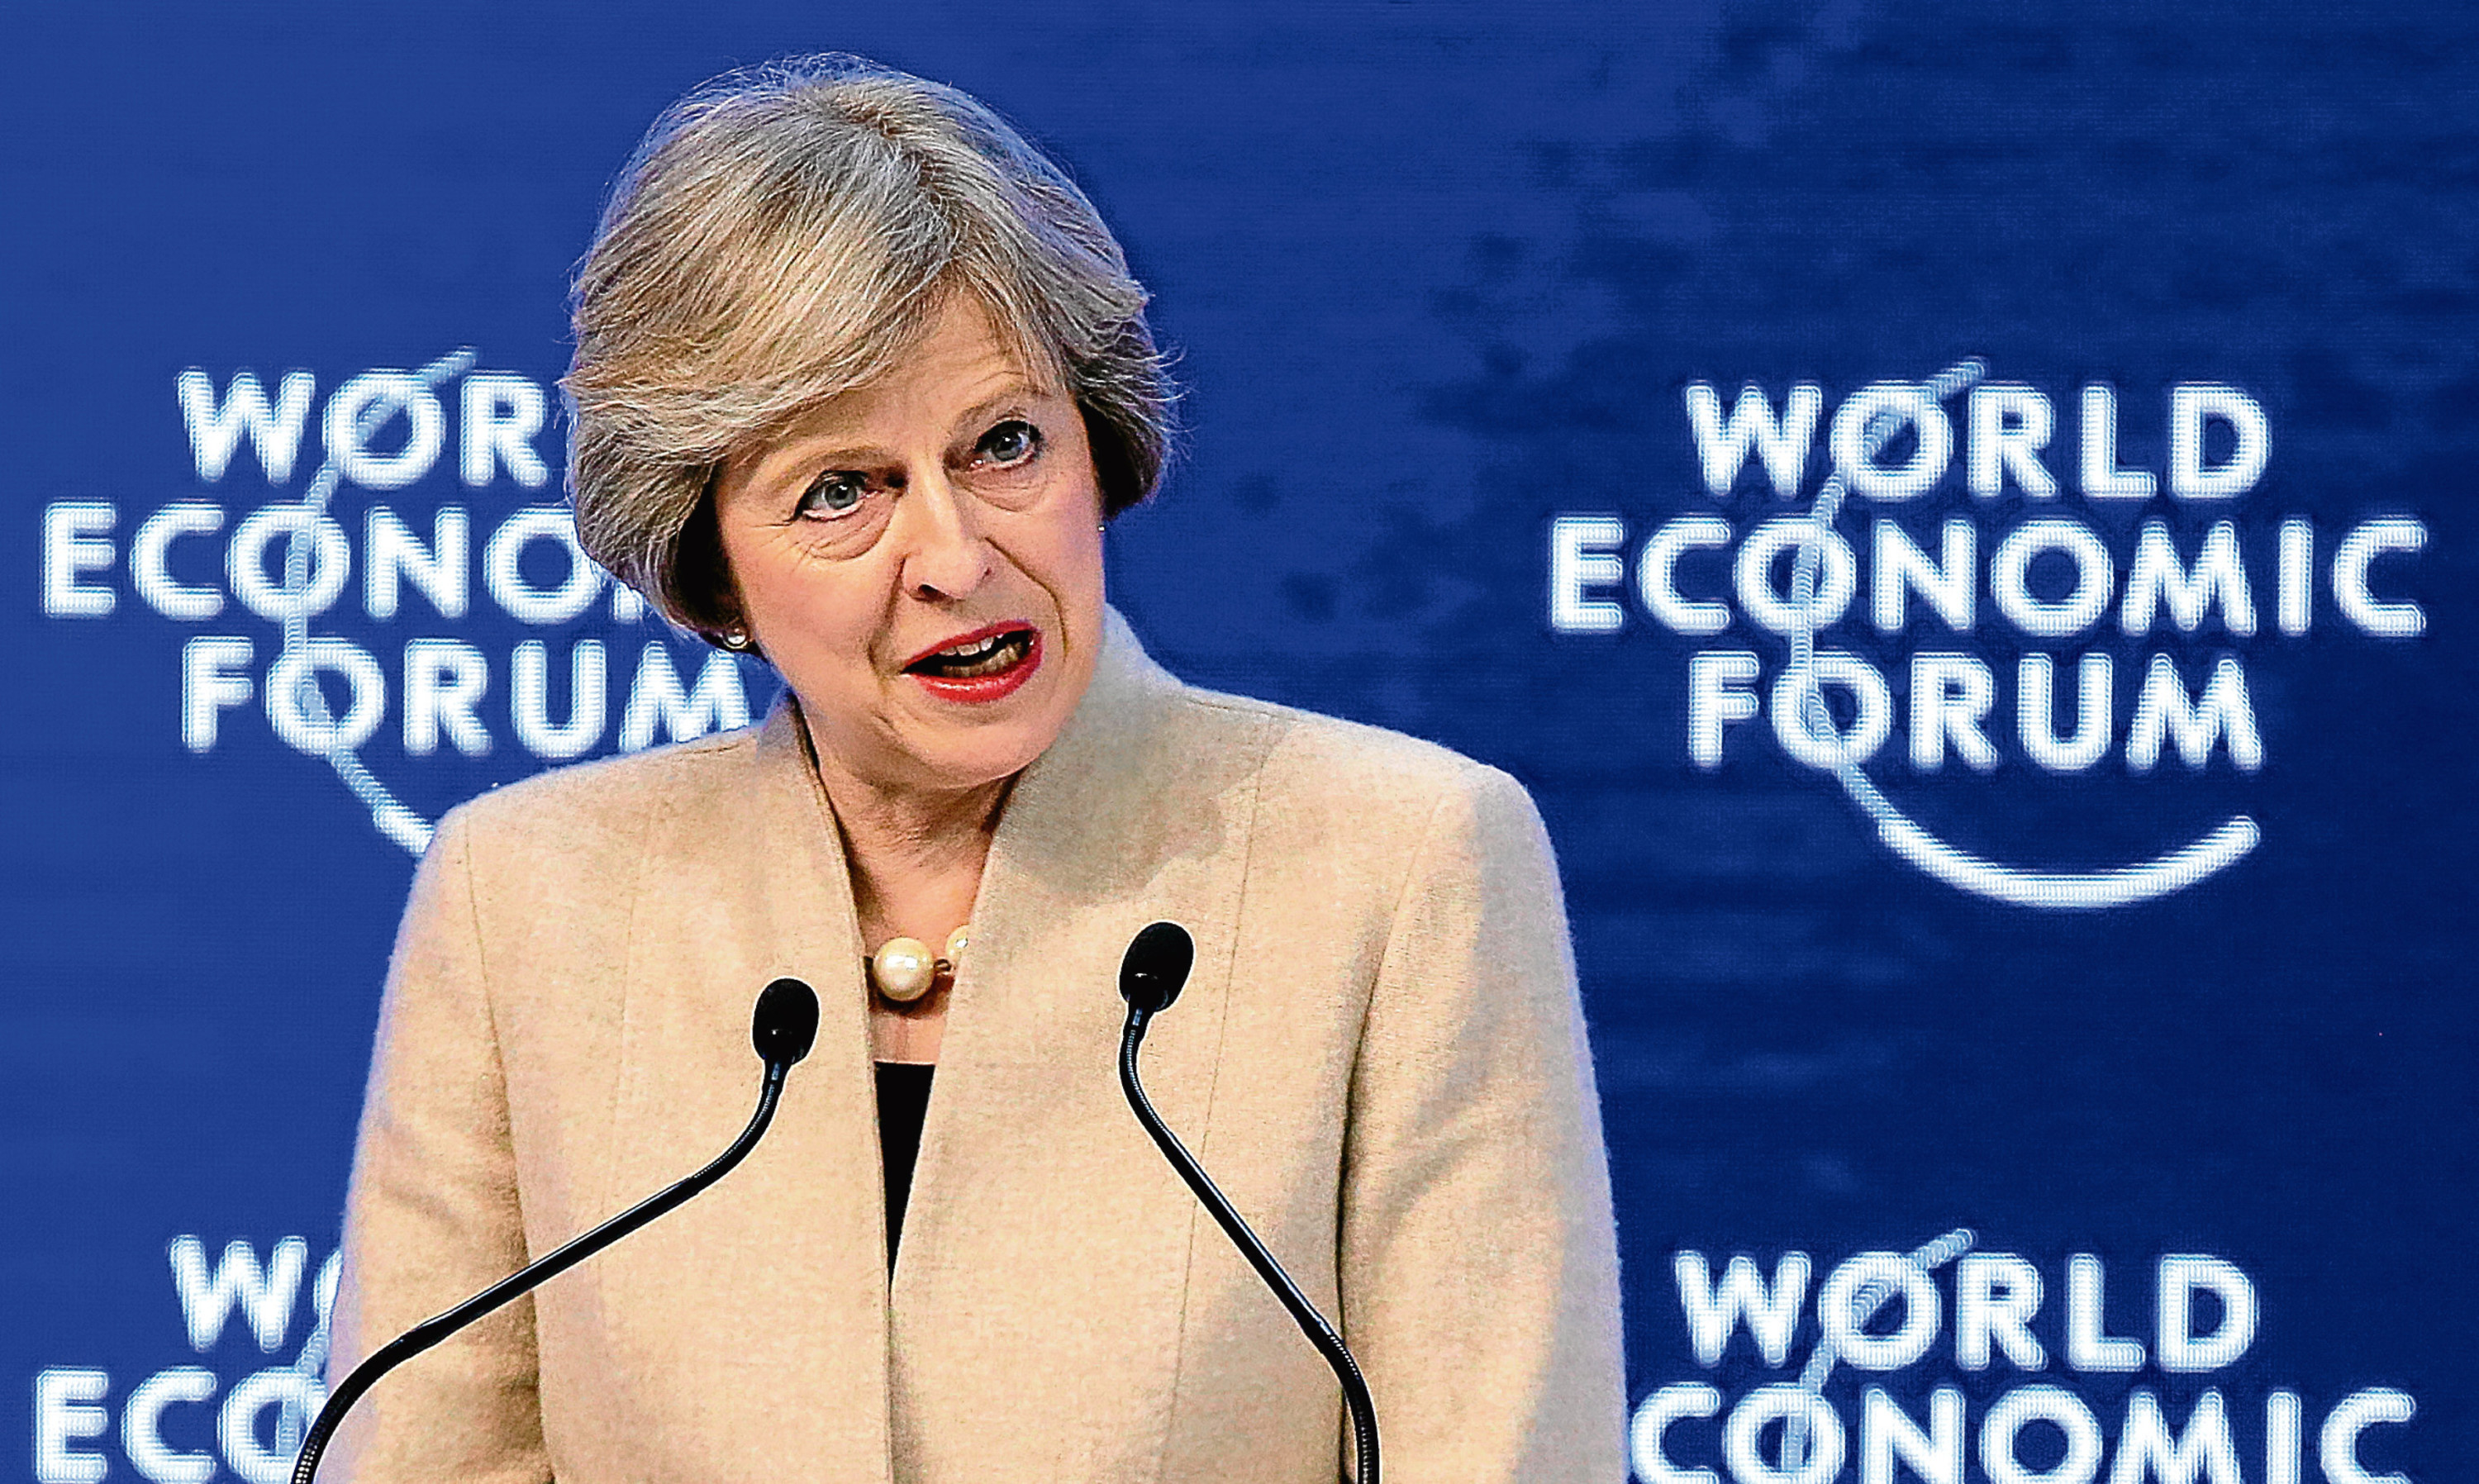 Prime Minister Theresa May addresses leaders at the World Economic Forum in Davos